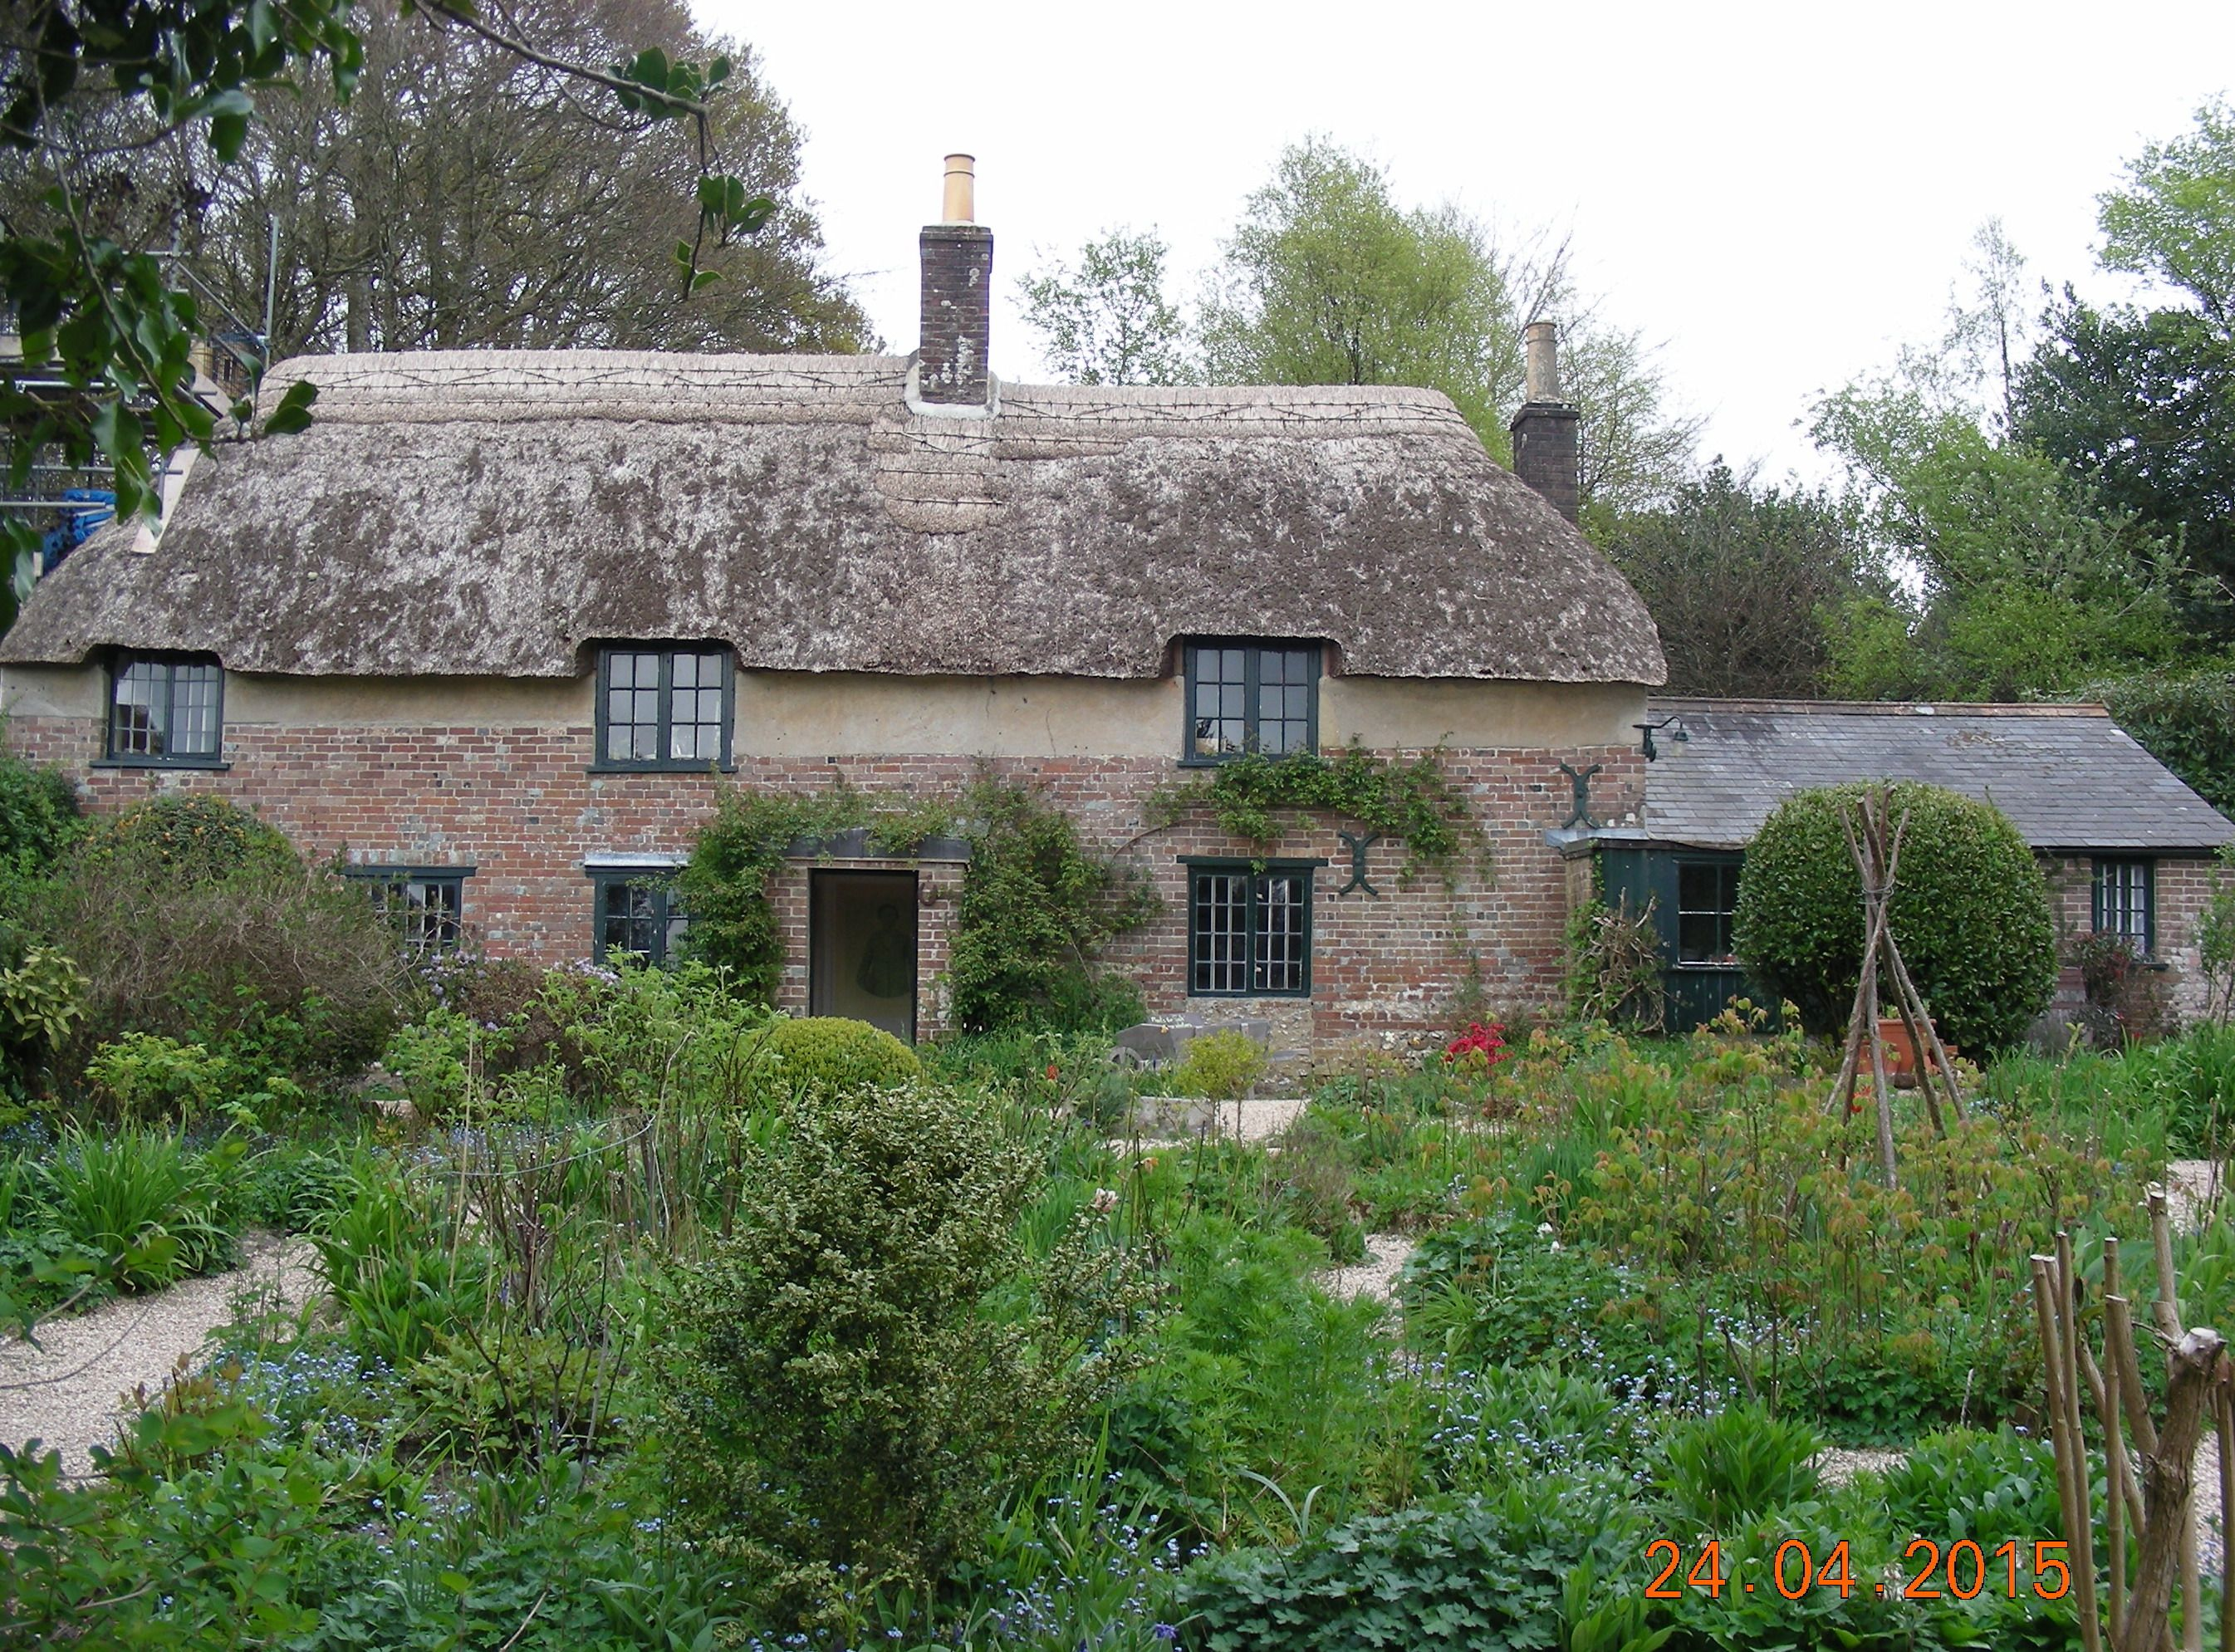 thomas hardy s birthplace 1840 at higher bockhampton dorset thomas hardy s birthplace 1840 at higher bockhampton dorset